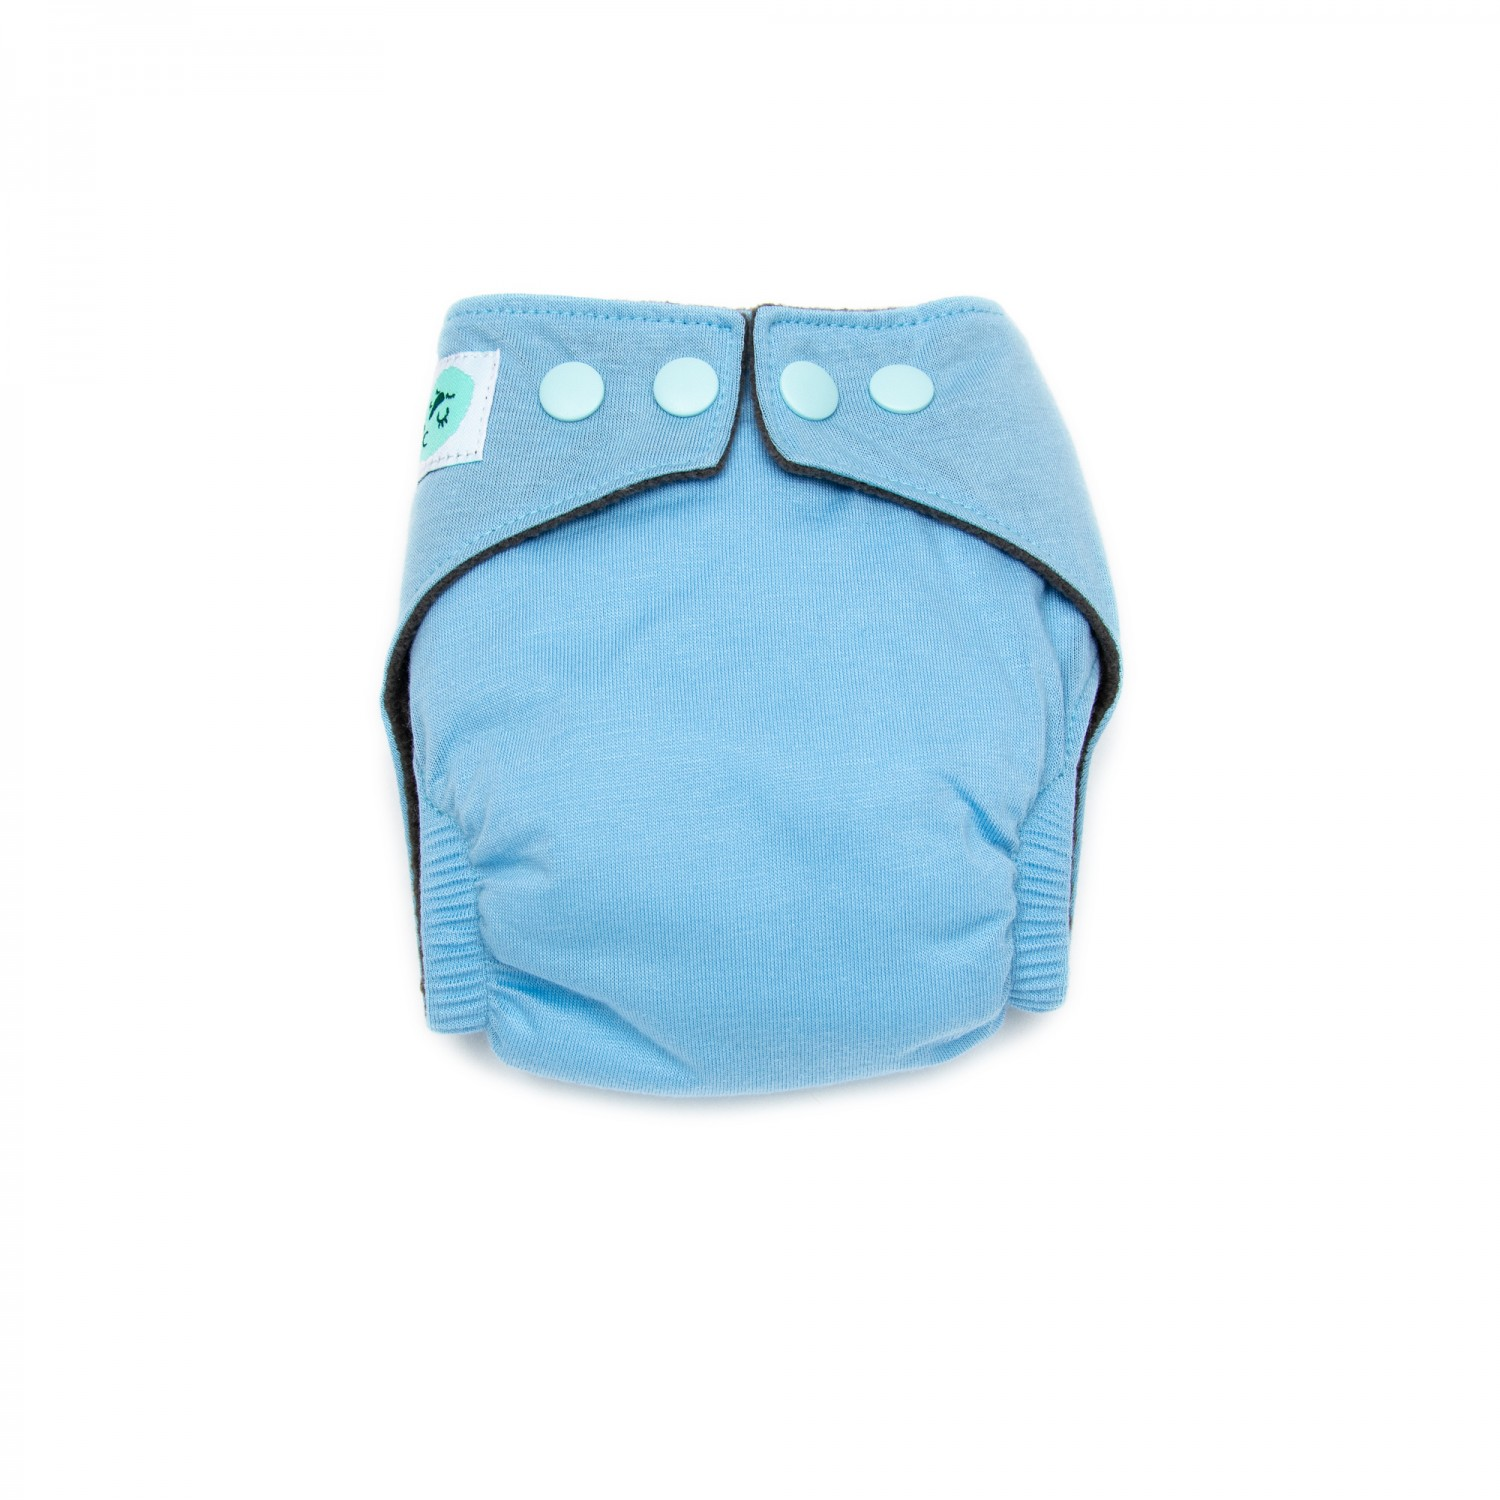 All in one Newborn Cloth Nappies – 0-4 Months – Daydream Blue